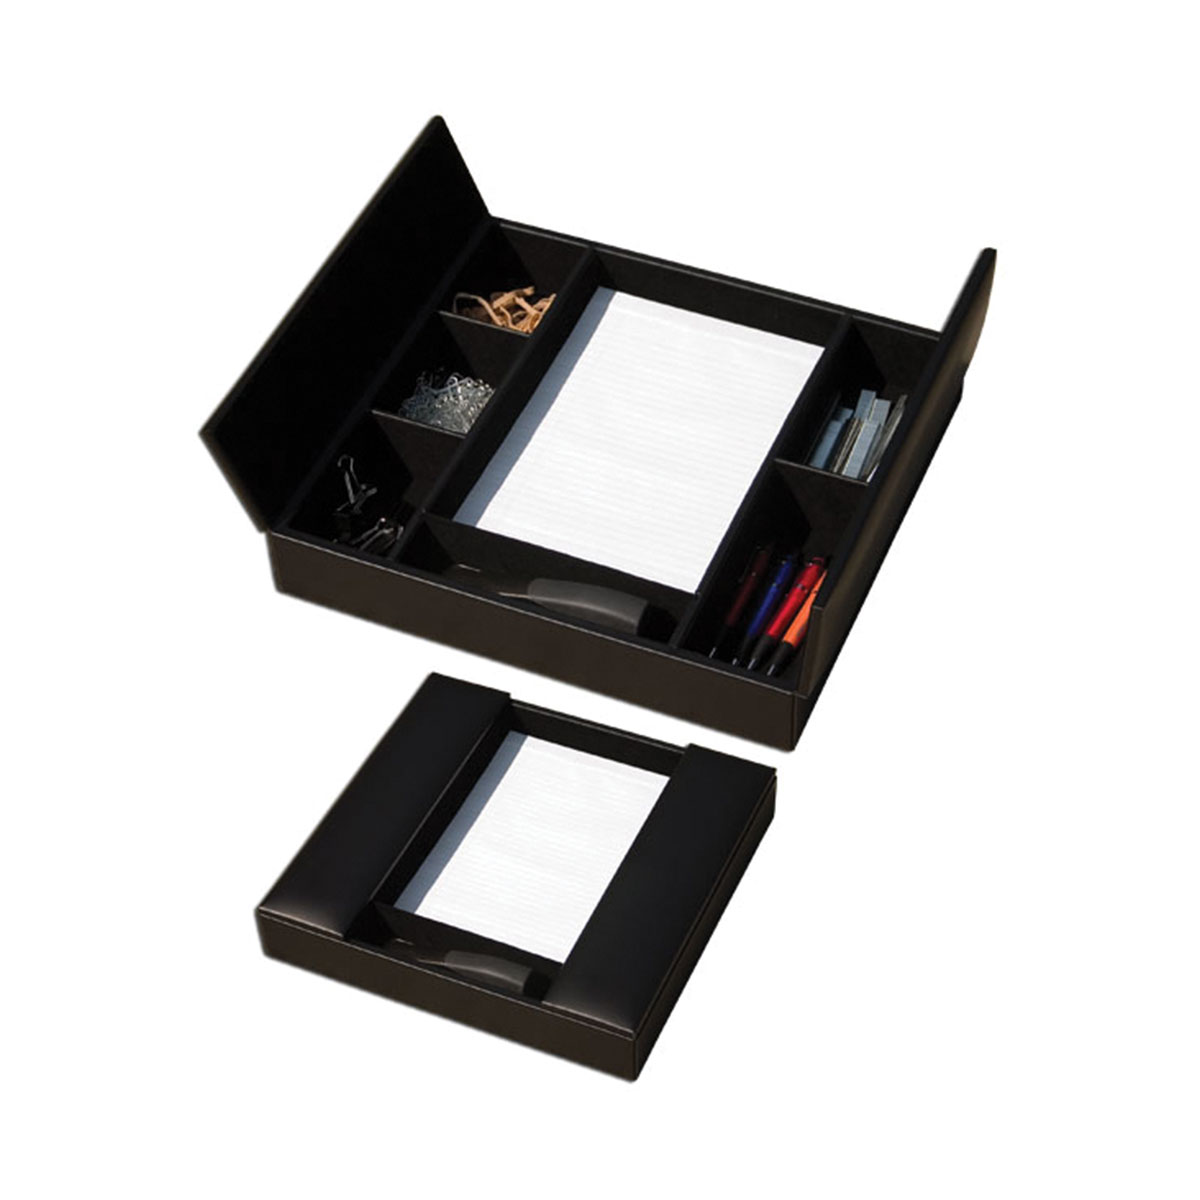 Deluxe Pad & Pen Organizer - Chocolate Brown